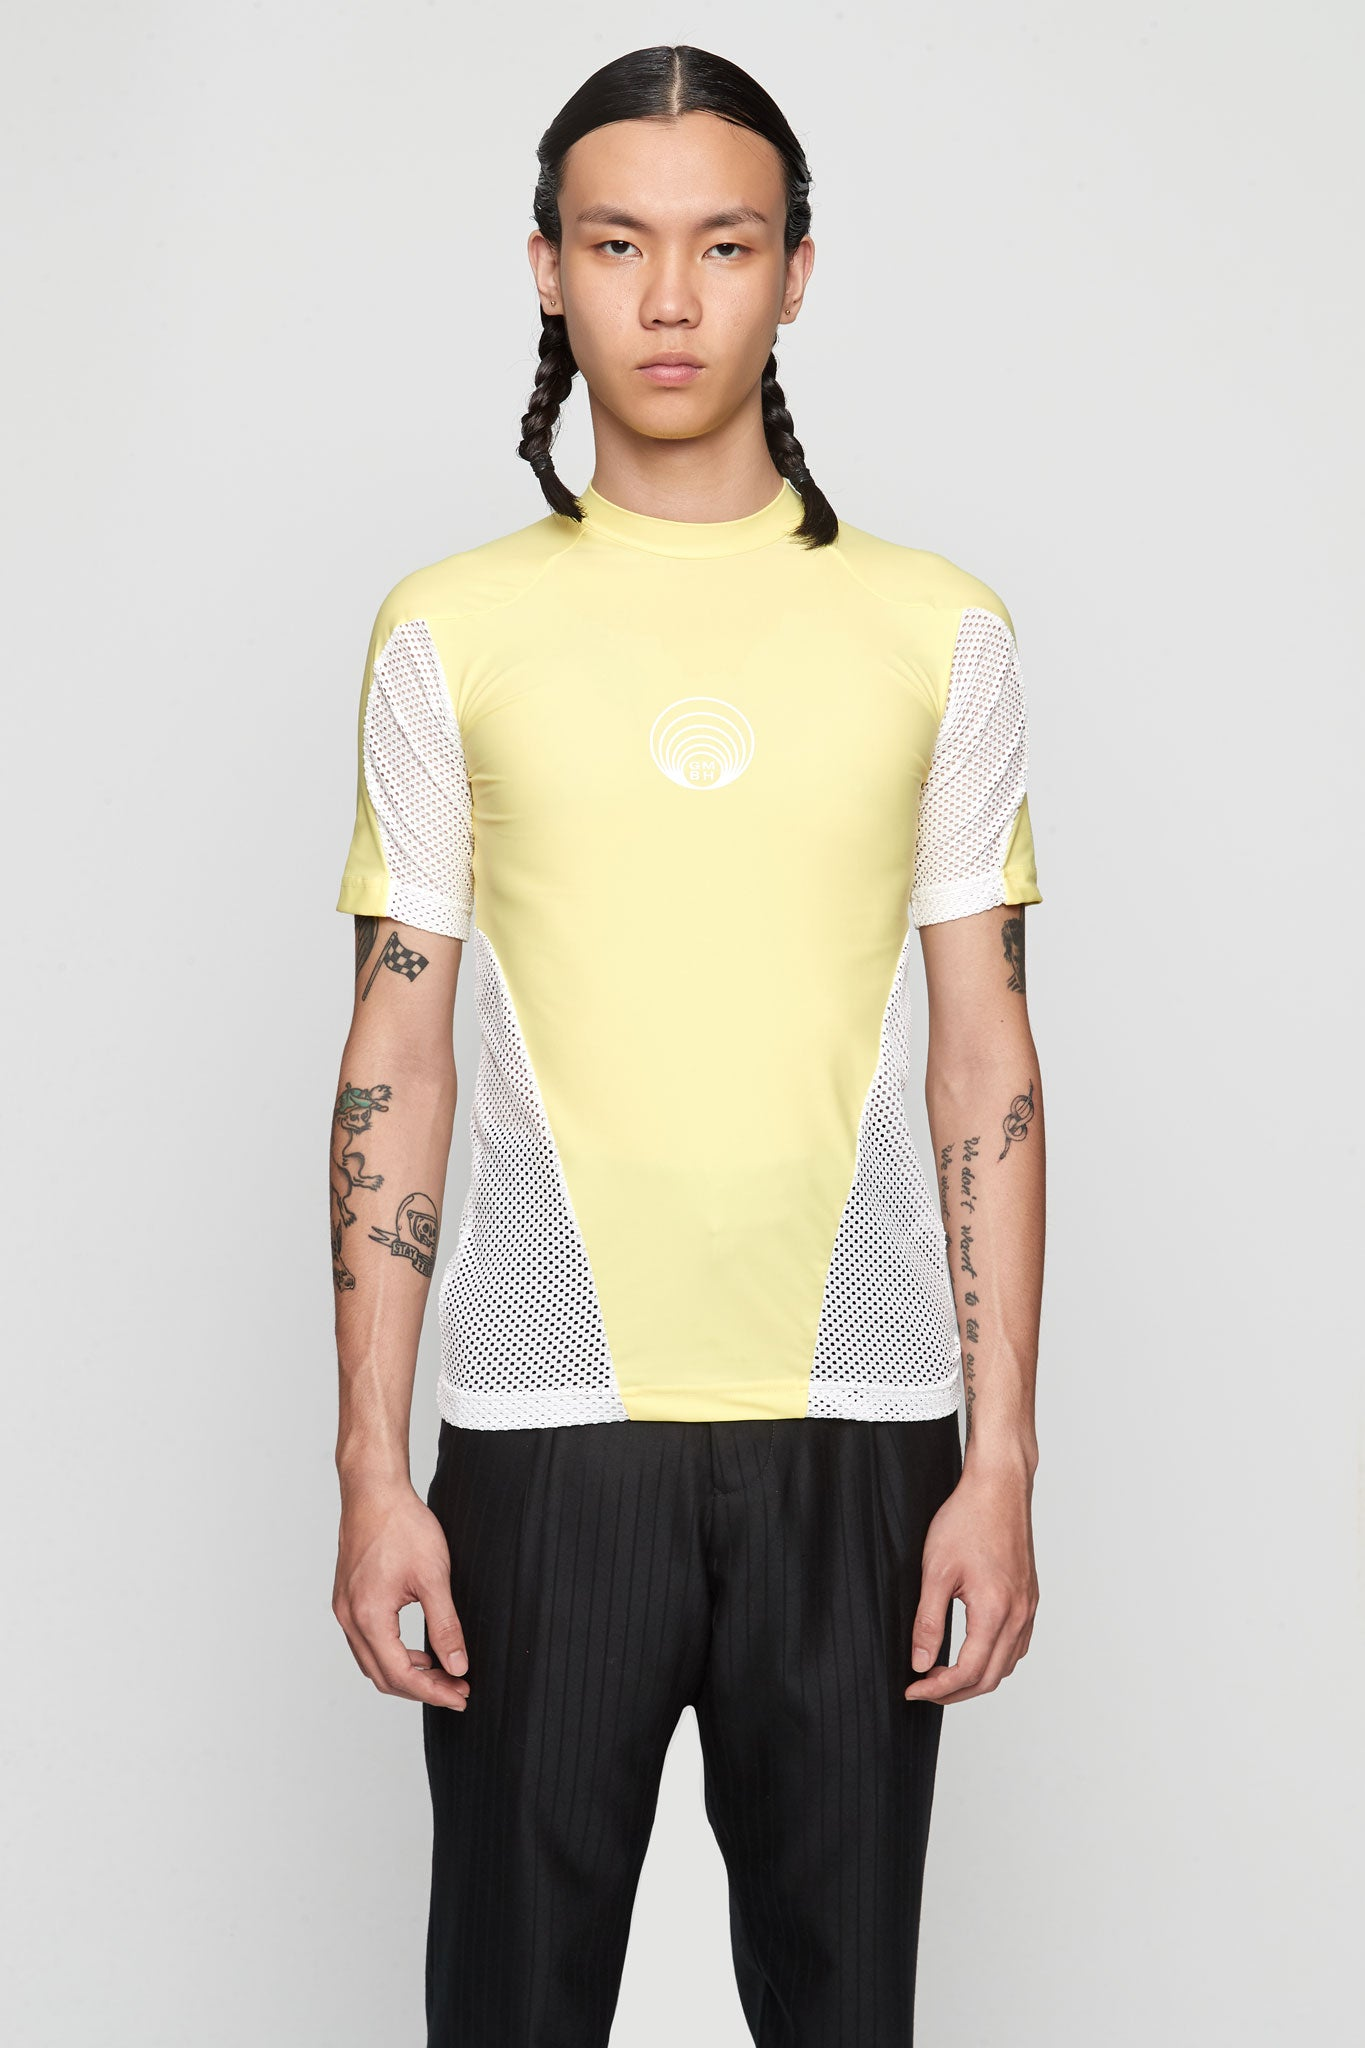 Eevan' Tight Tee With Mesh YELLOW